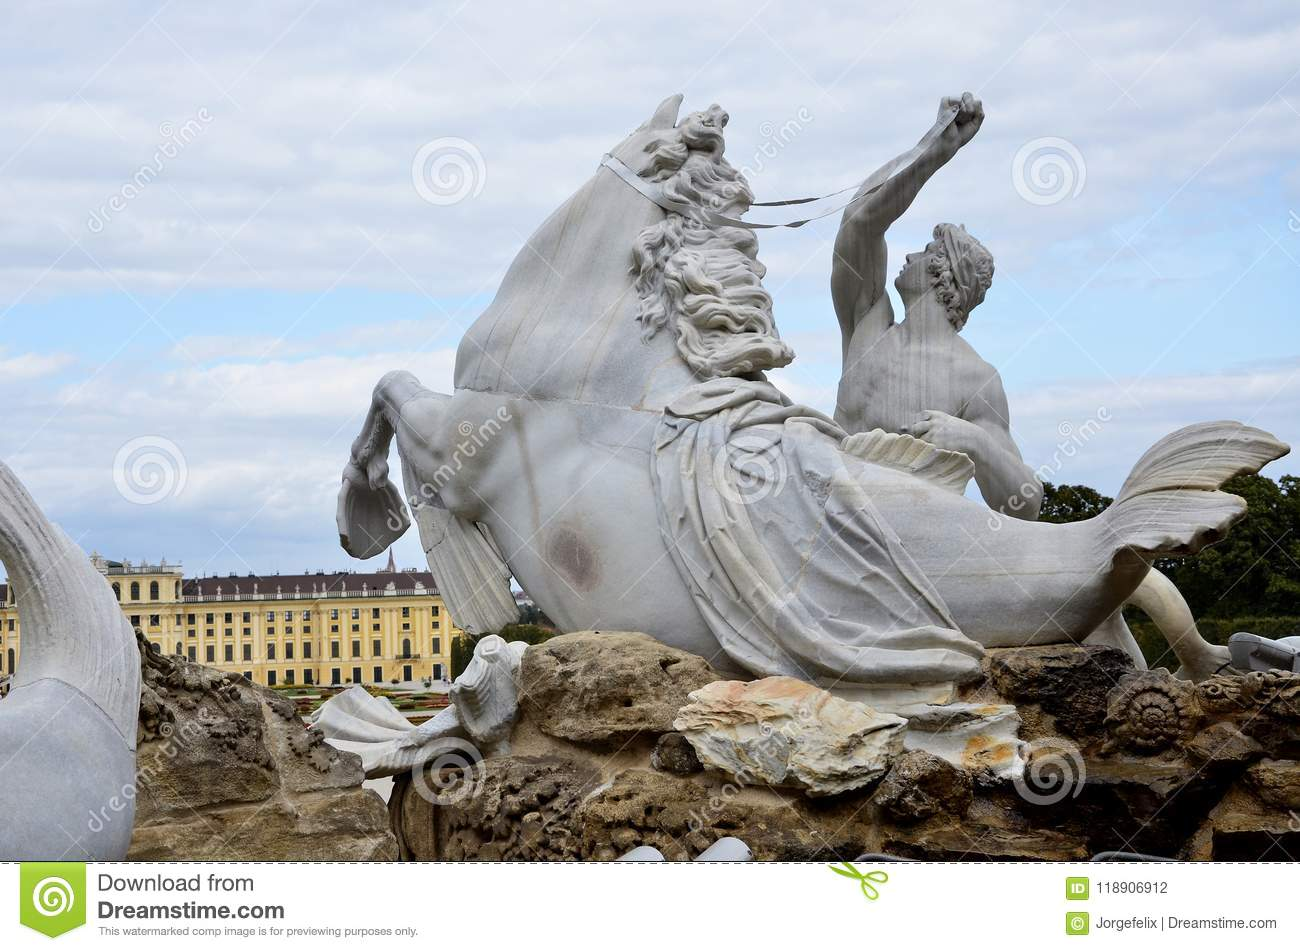 3 903 Marble Horse Statue Photos Free Royalty Free Stock Photos From Dreamstime